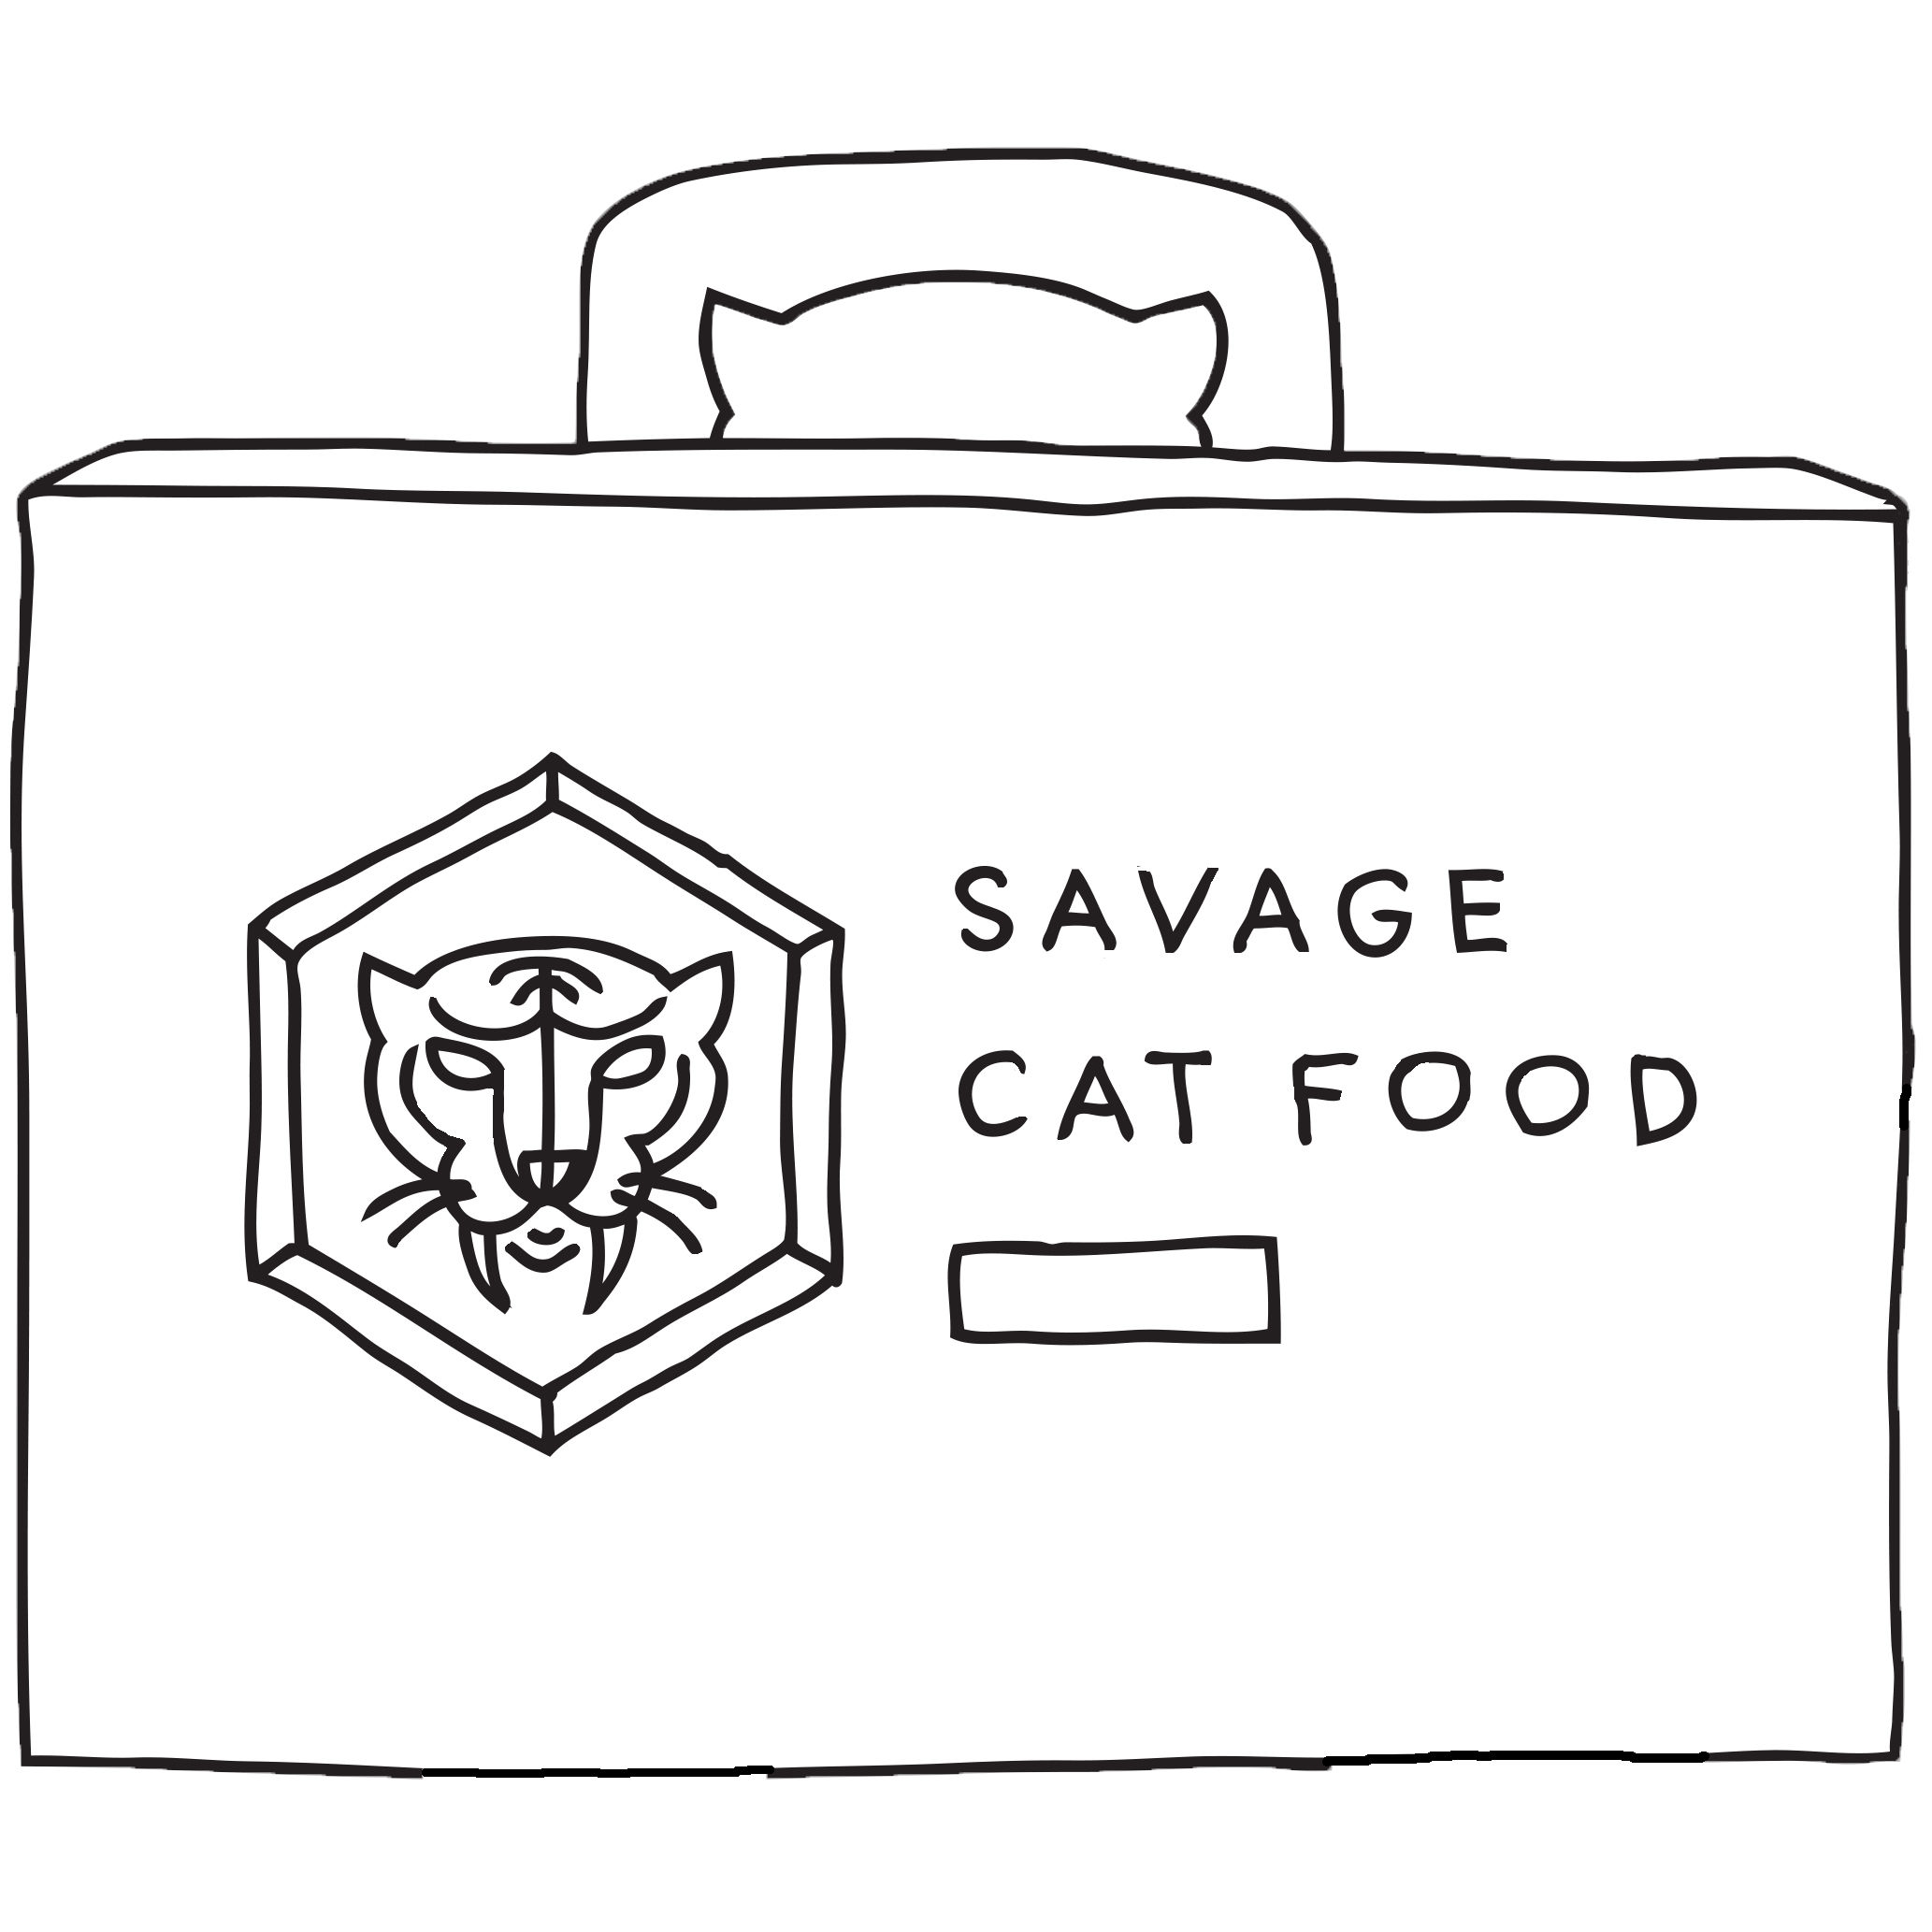 Leave Raw Cat Food Out To Thaw